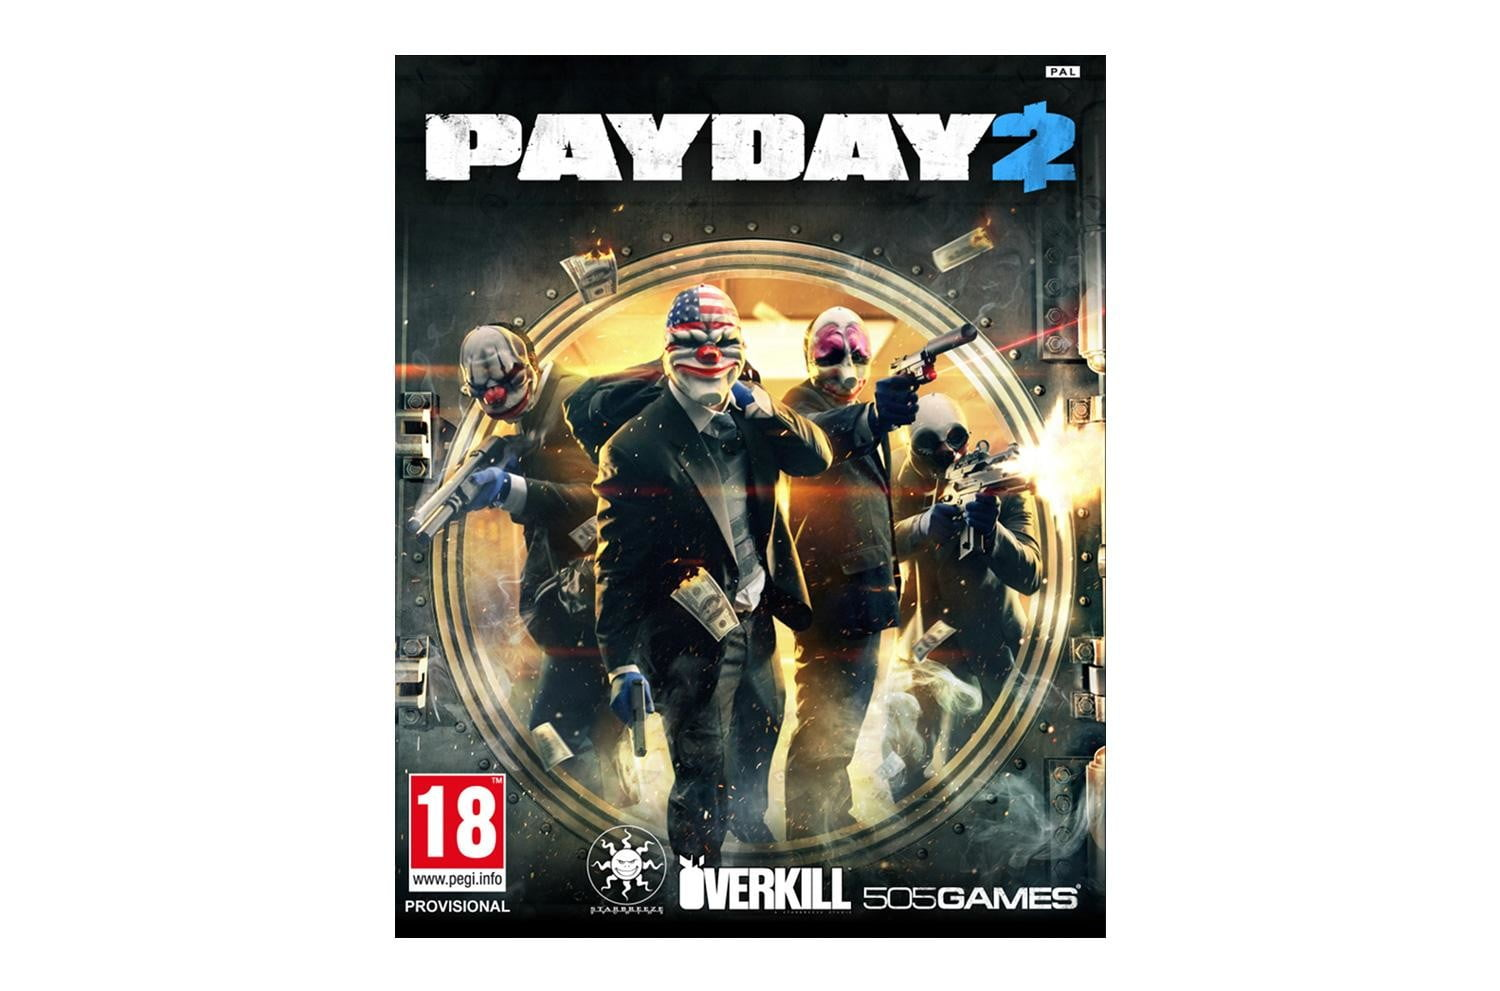 Payday-2-cover-art